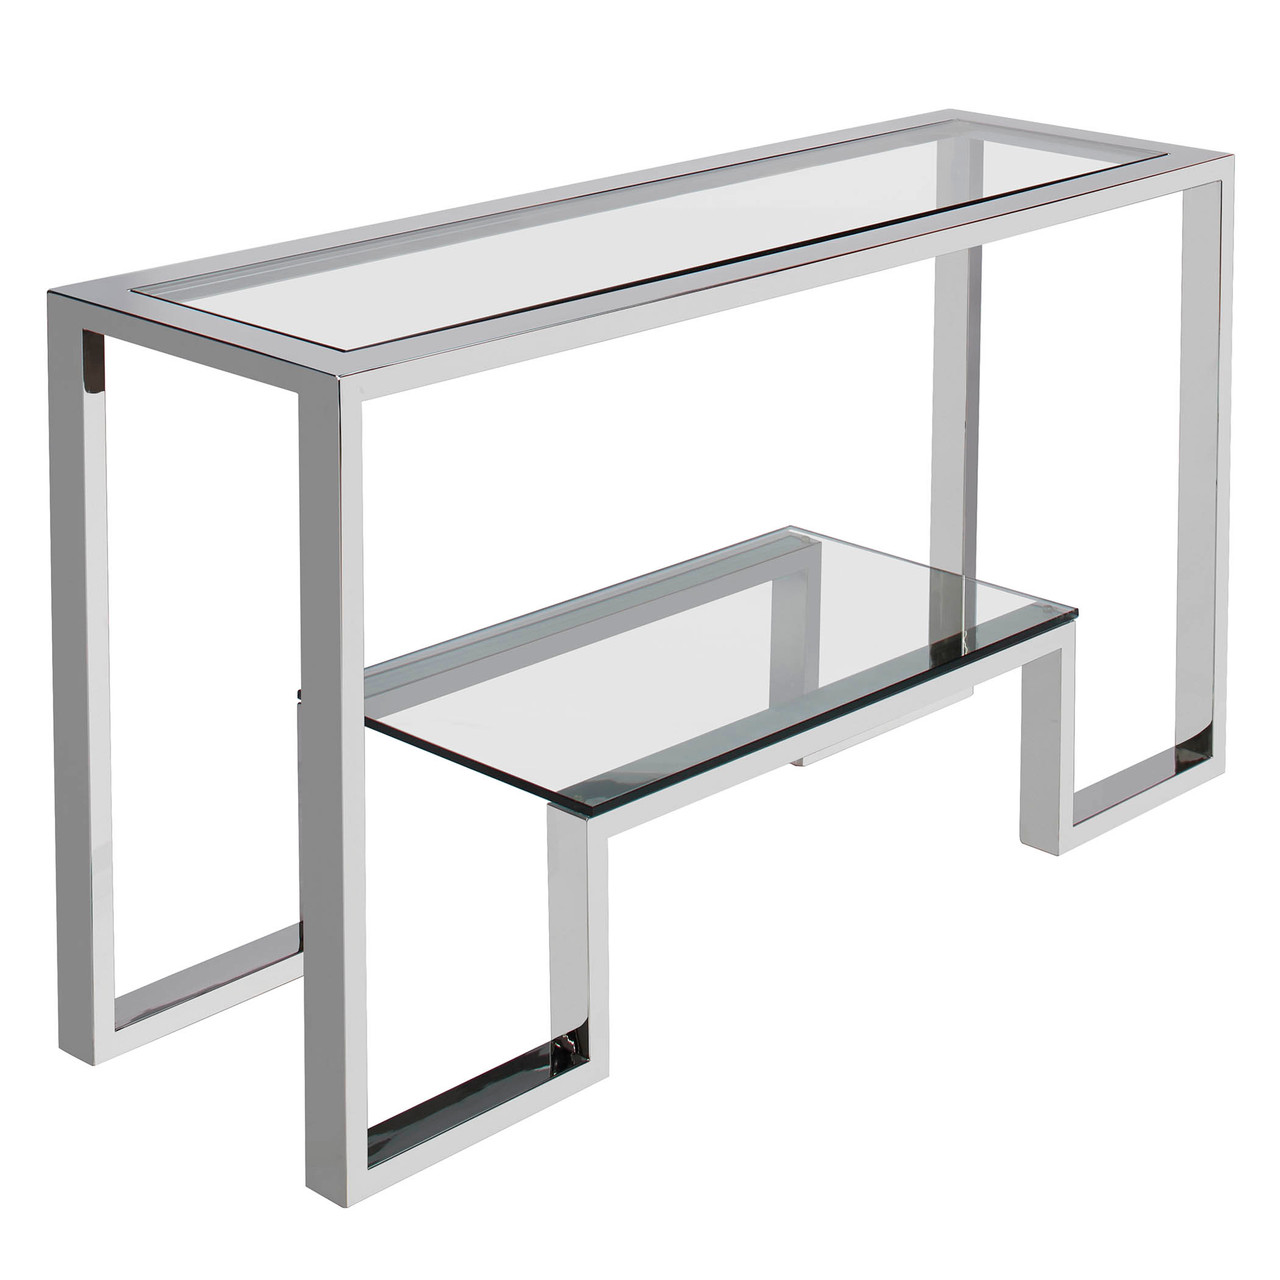 In Stock - Duplicity Console Table